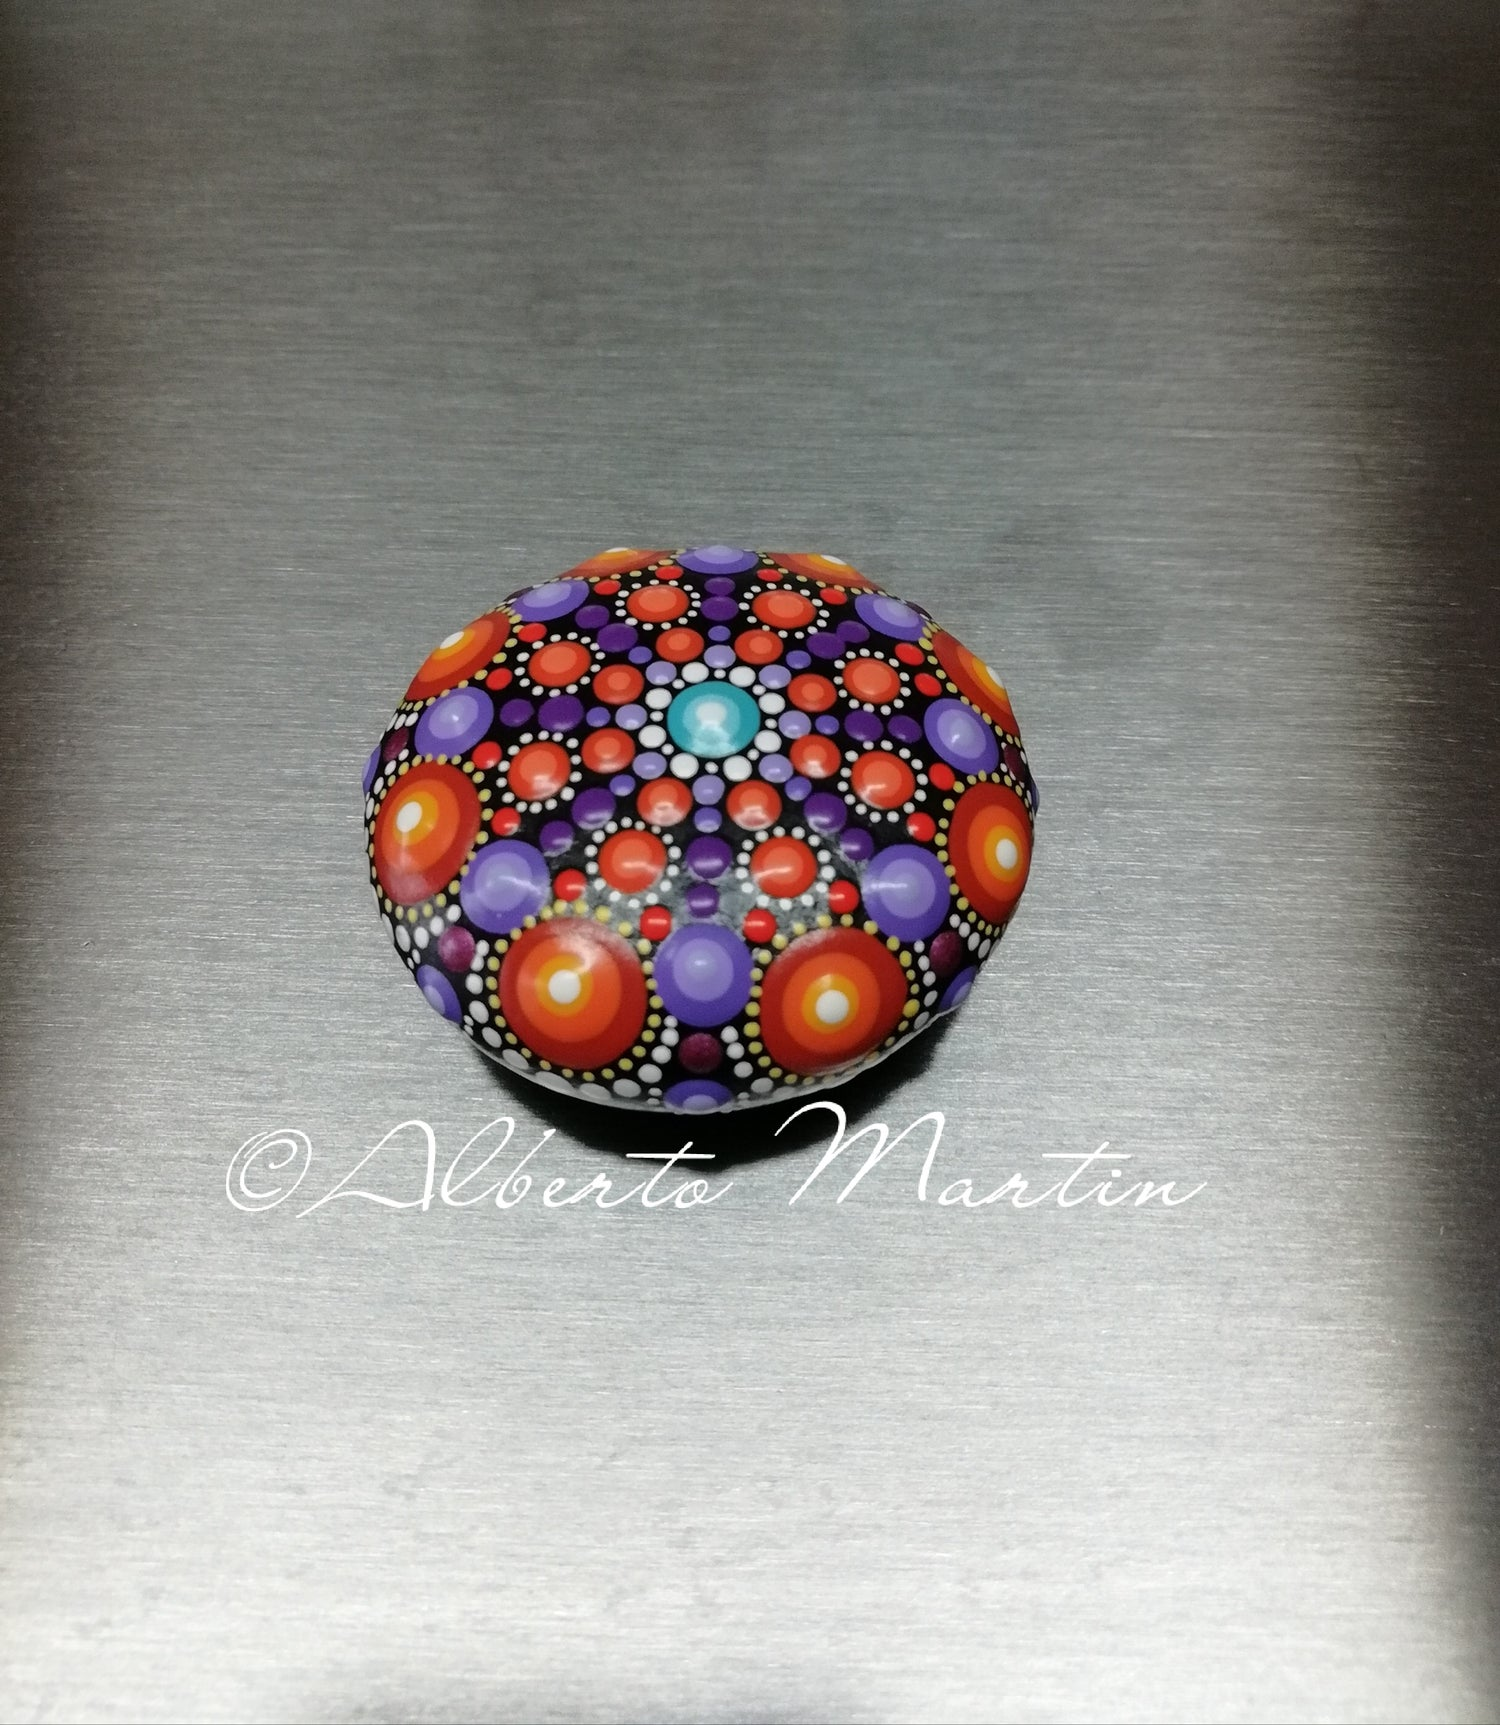 Image of Mandala stones fridge magnet by Alberto Martin- purple- orange